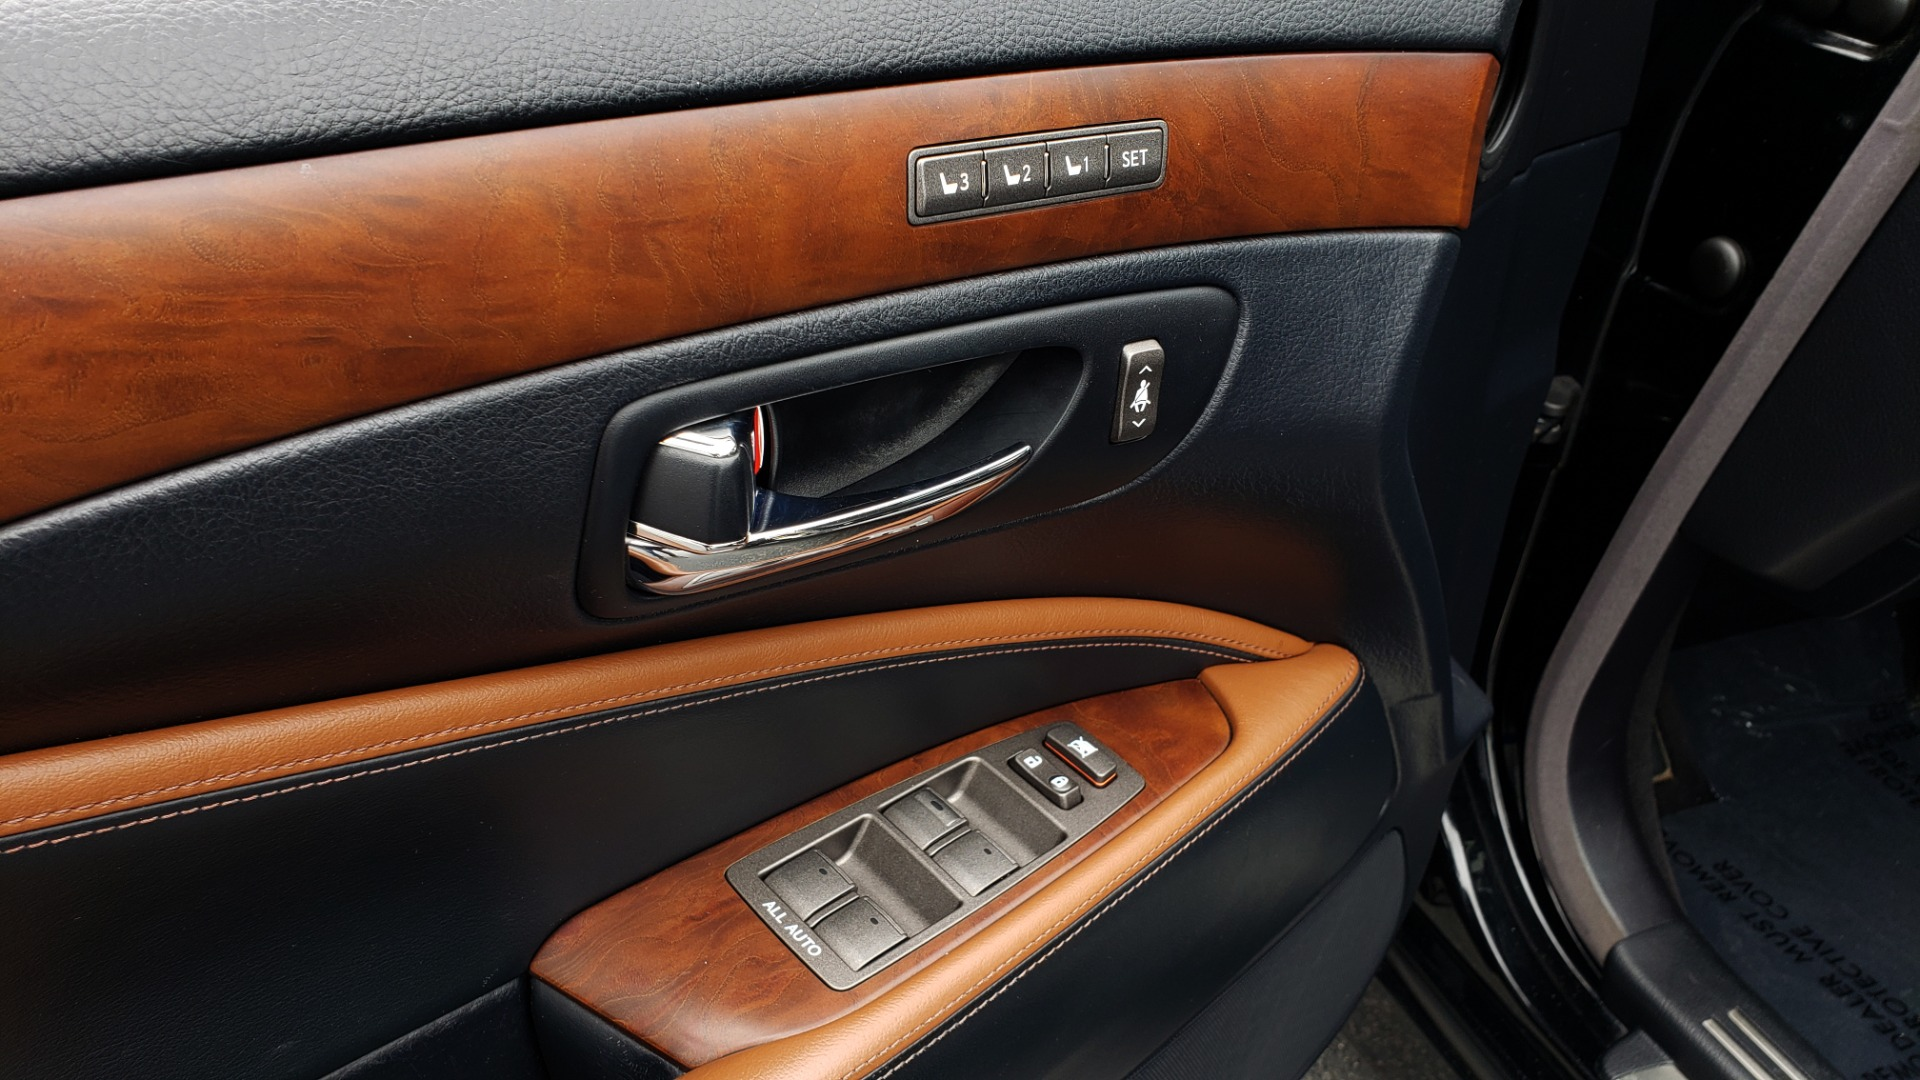 Used 2012 Lexus LS 460 COMFORT W/SPORT / VENT SEATS / NAV / MARK LEV SND / SUNROOF for sale Sold at Formula Imports in Charlotte NC 28227 30